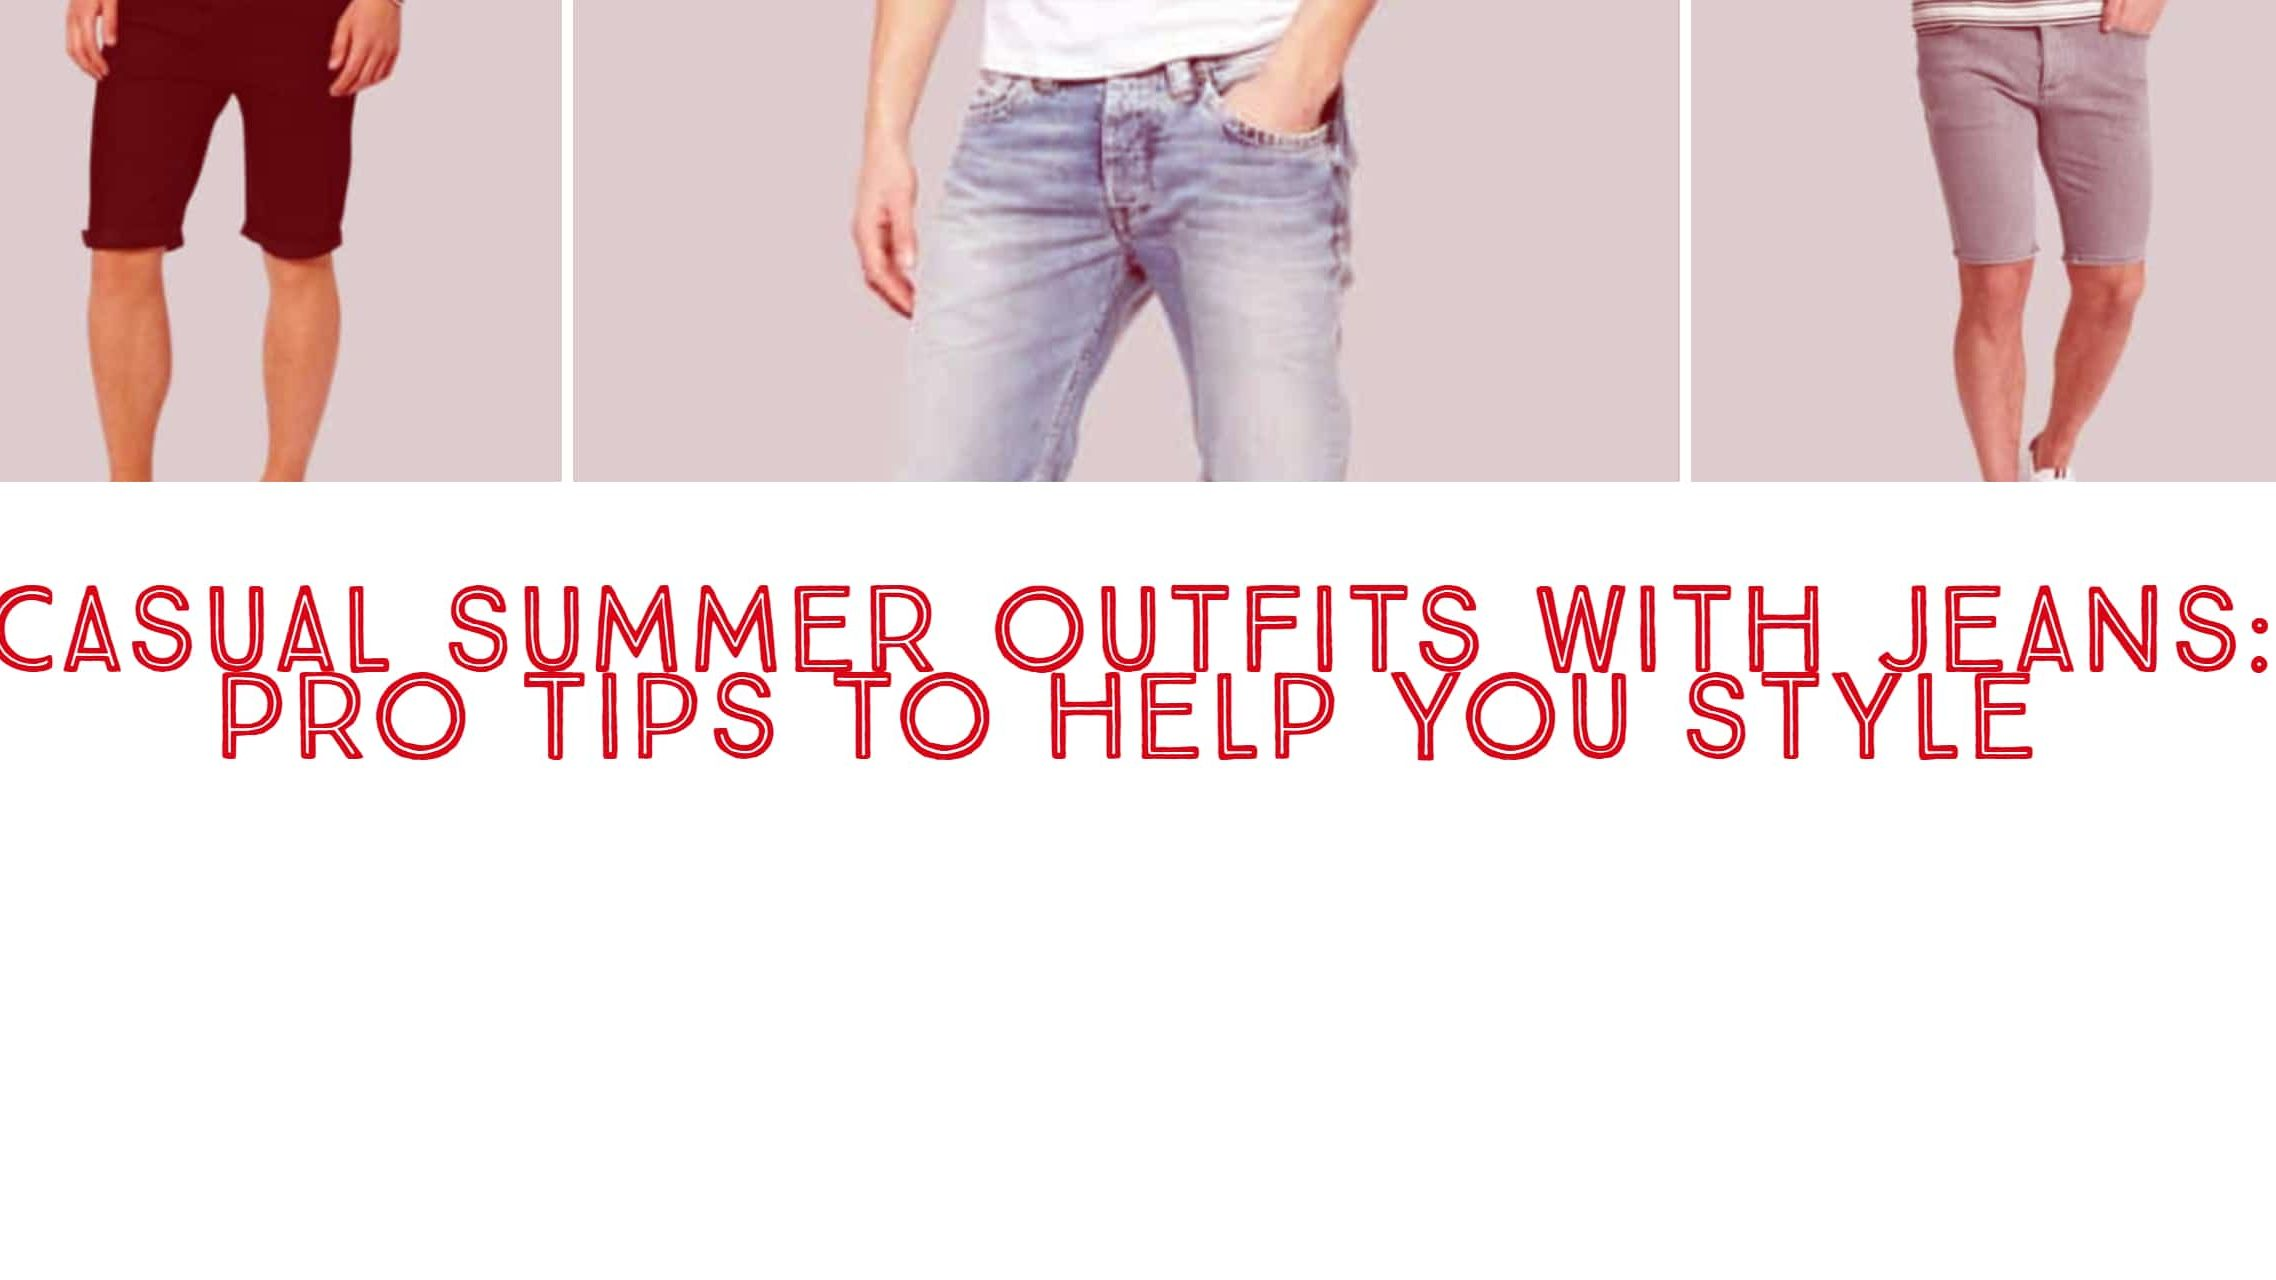 cropped-Casual-Summer-Outfits-with-Jeans-Pro-Tips-to-Help-You-Style-2.jpg